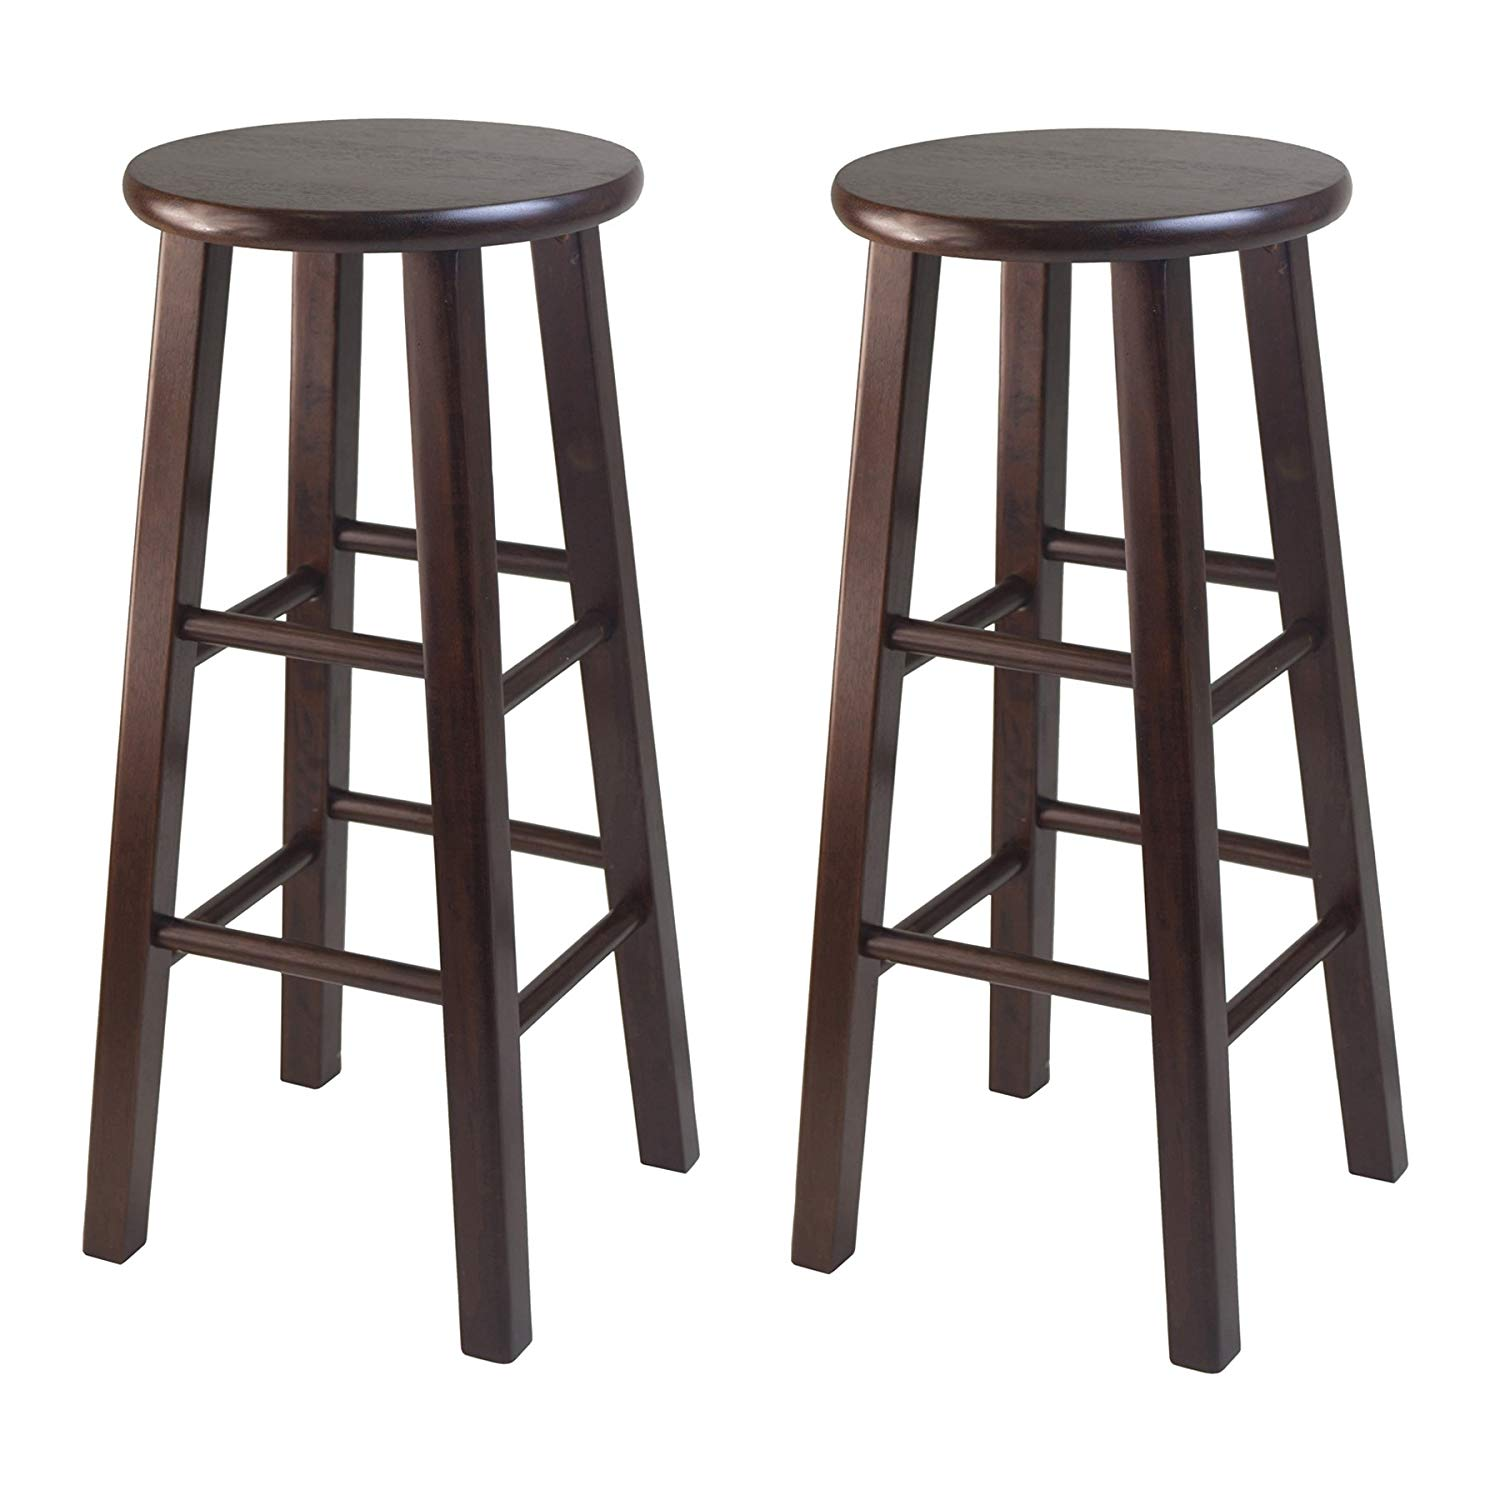 Wooden bar stool amazon.com: winsome wood 29-inch bar stool with square leg, natural, set by KASPJWT